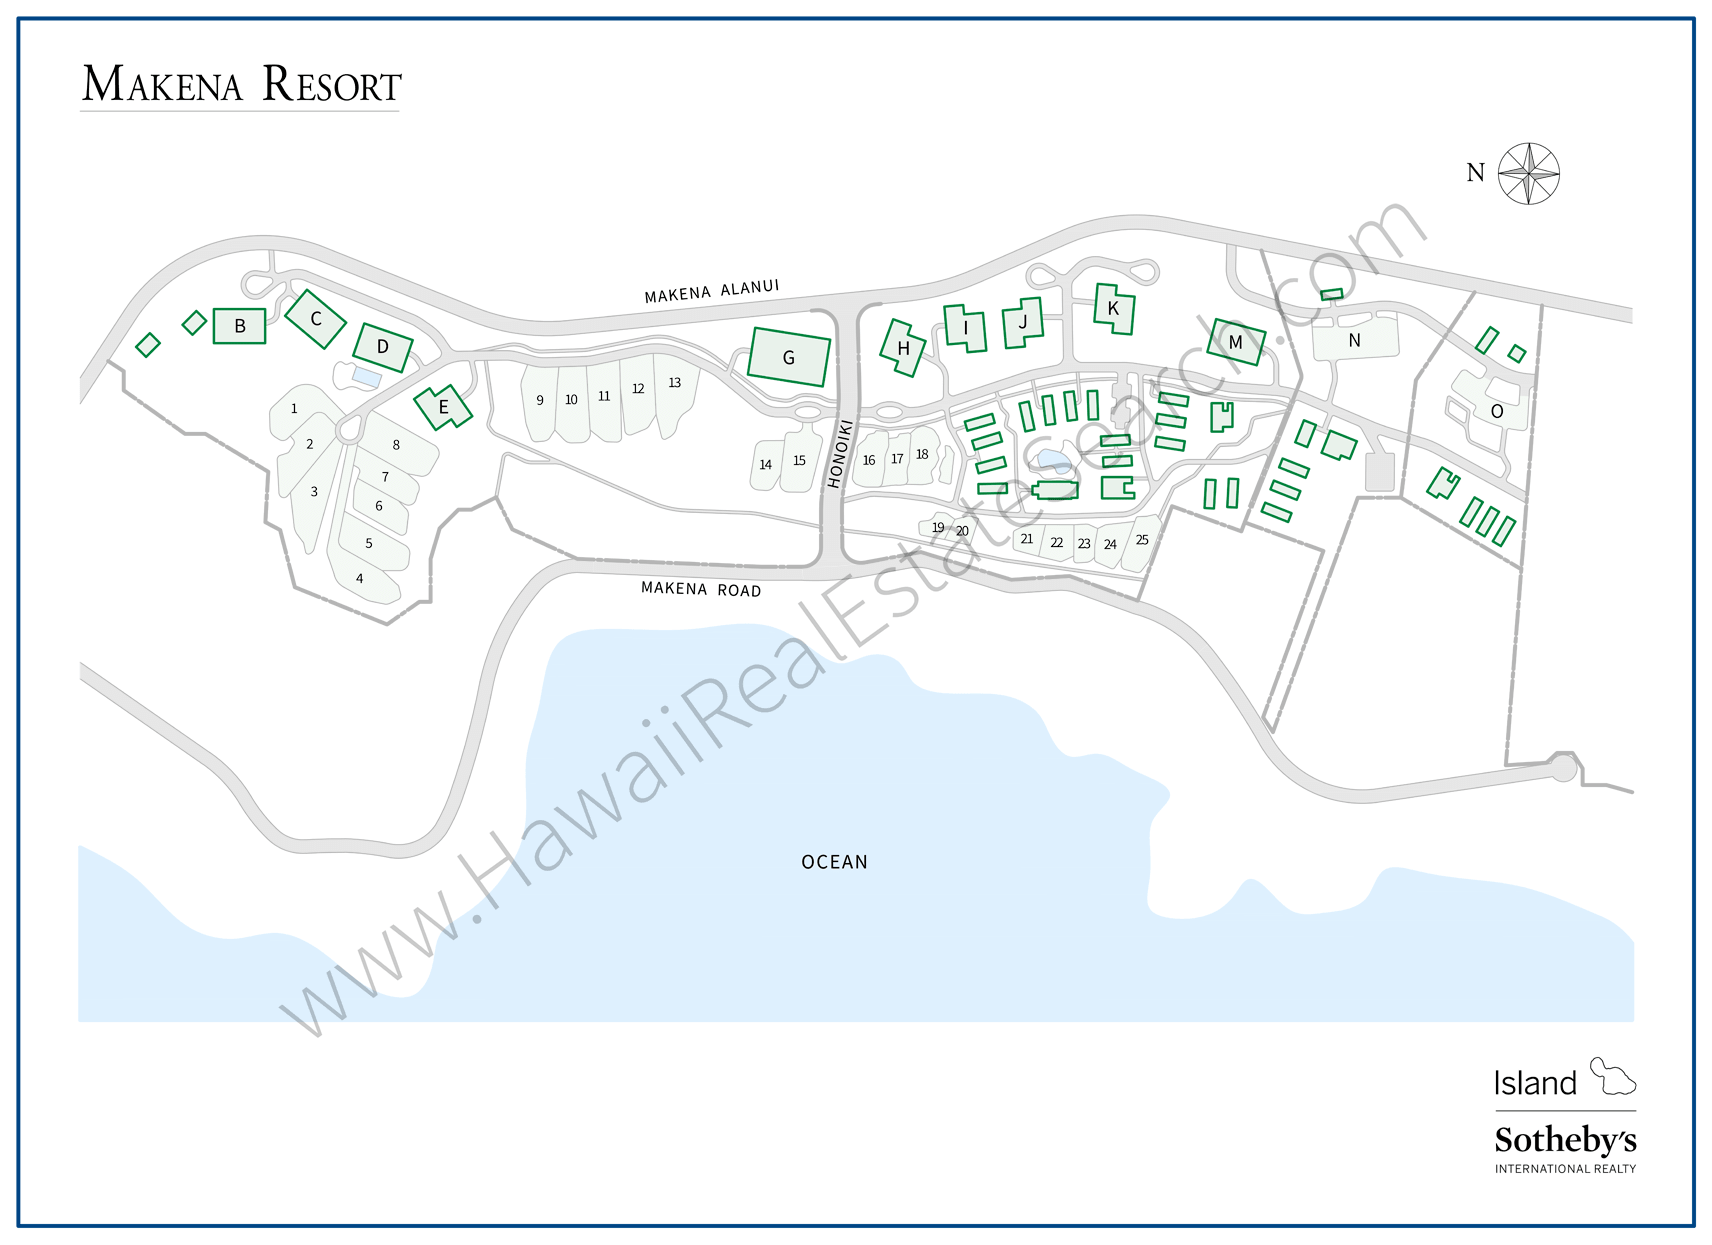 Makena Resort Development Map